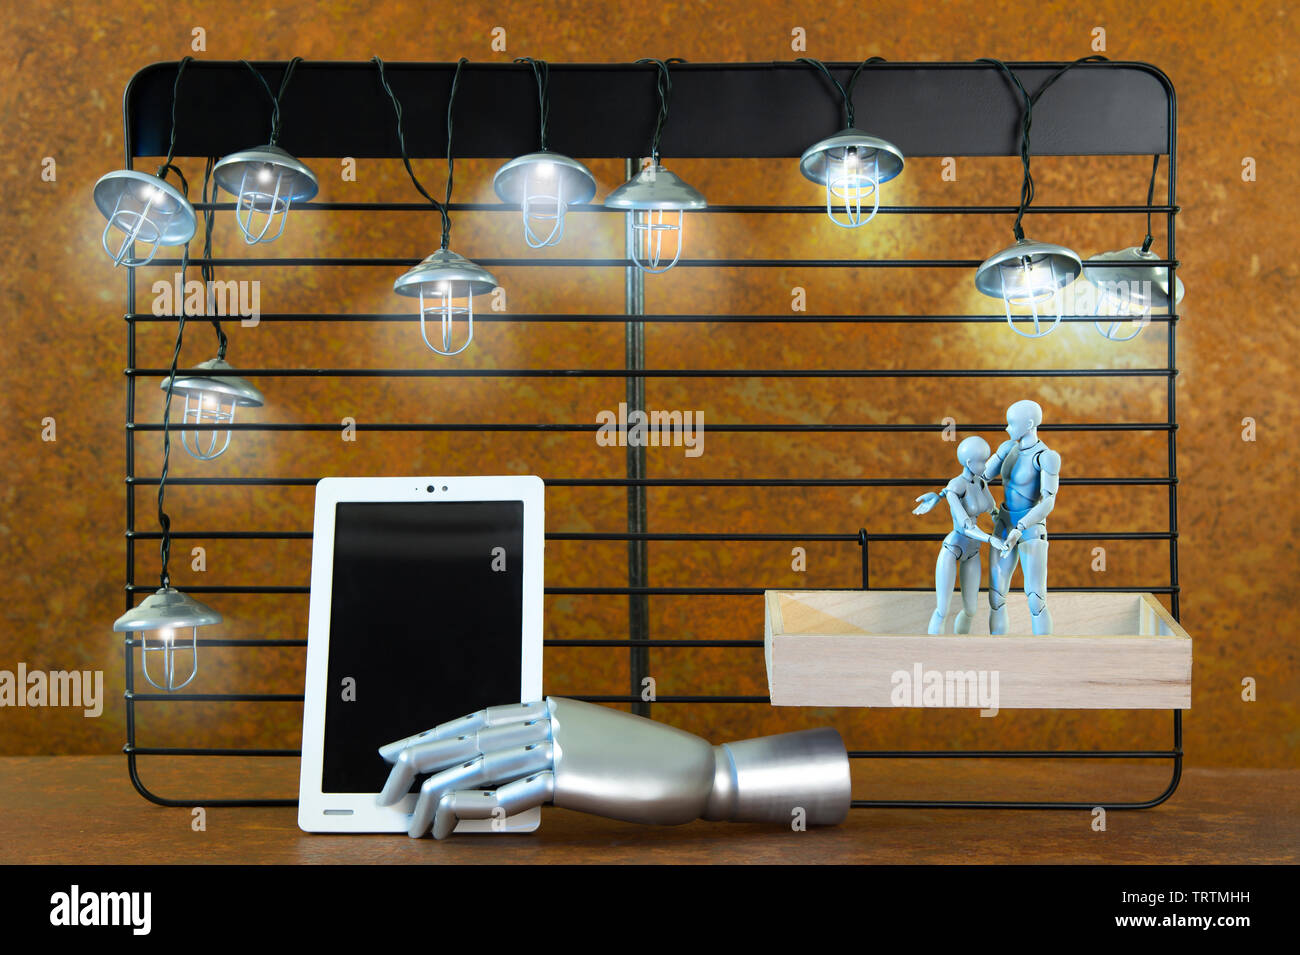 A black shelf in front of real rust. Mine lights shine. Two robot figures hugging each other. The man points to a tablet. A free space on a tablet lea Stock Photo